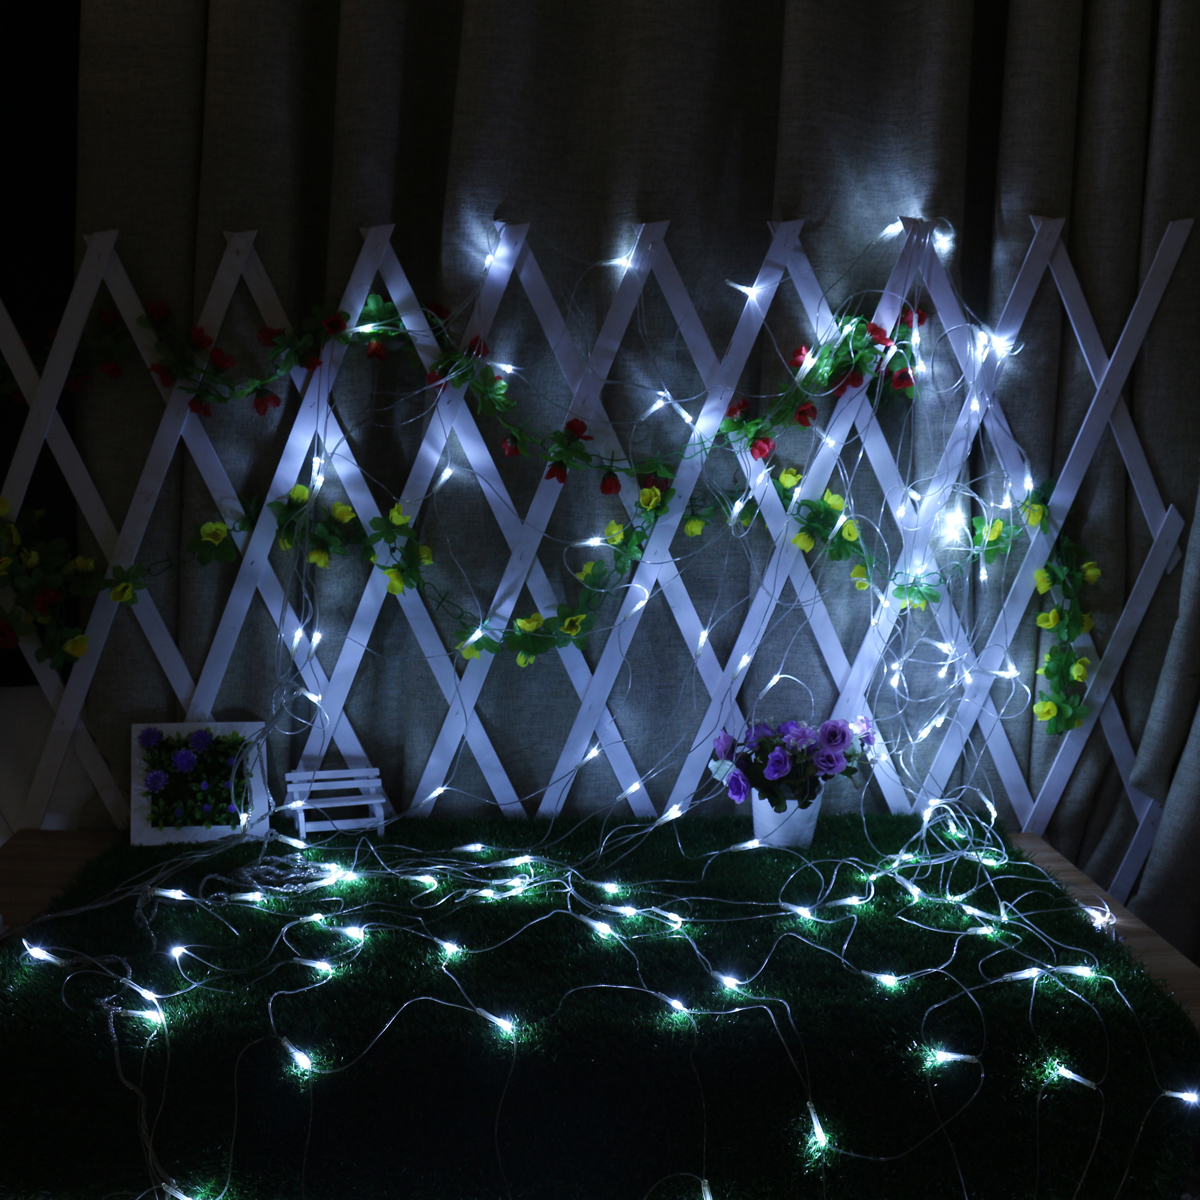 2M*3M 3M*3M Waterproof Mesh Net LED Fairy String Light For Wedding Christmas EU Plug